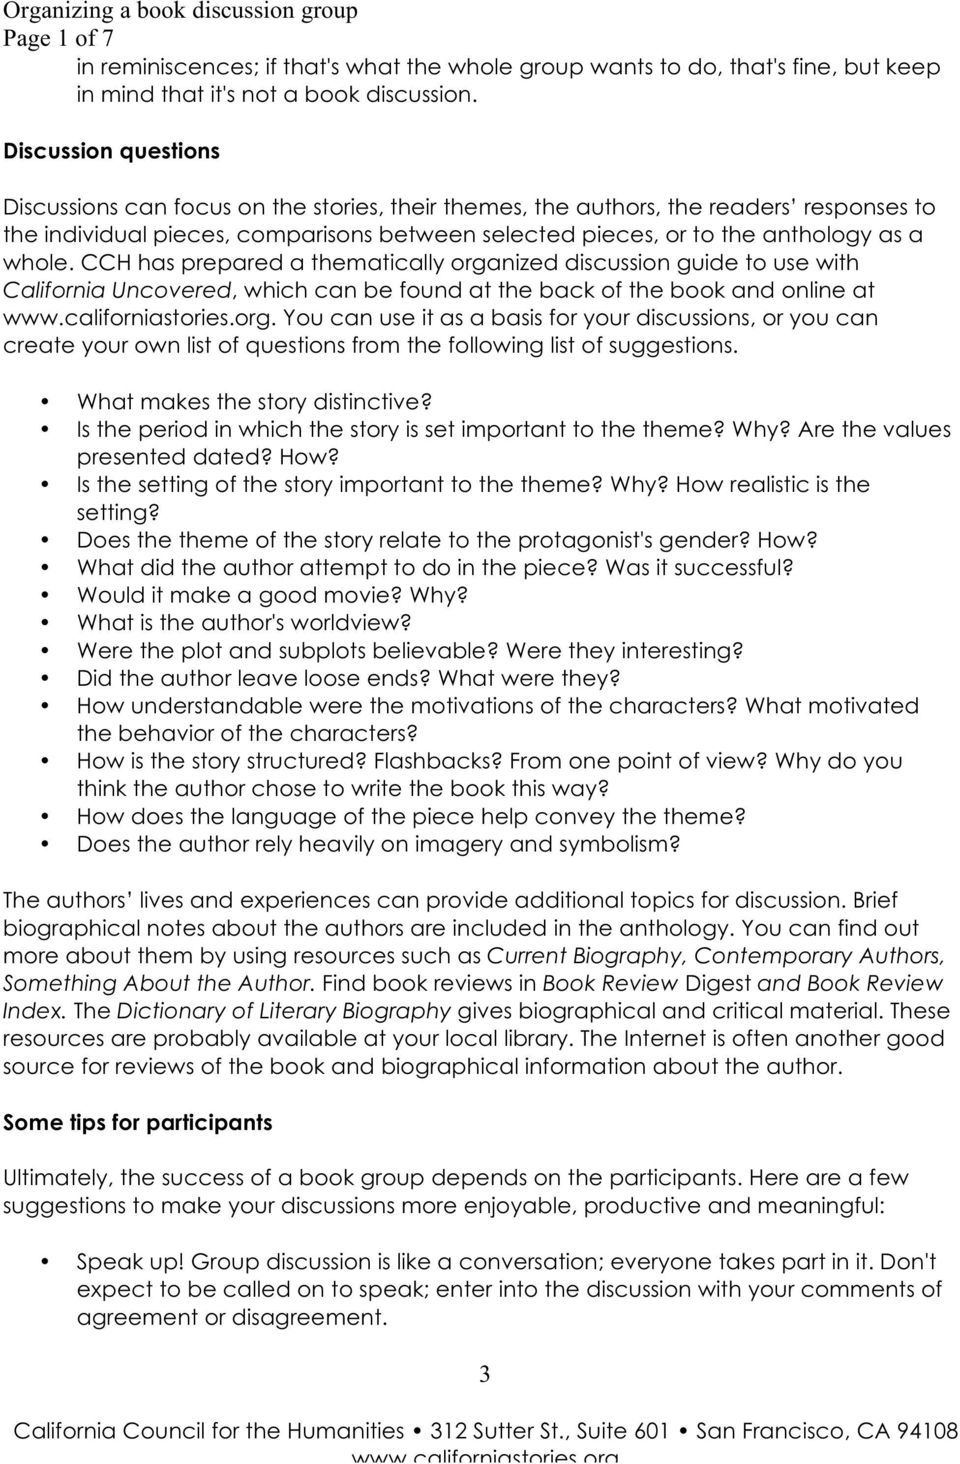 whole. CCH has prepared a thematically organized discussion guide to use with California Uncovered, which can be found at the back of the book and online at www.californiastories.org. You can use it as a basis for your discussions, or you can create your own list of questions from the following list of suggestions.